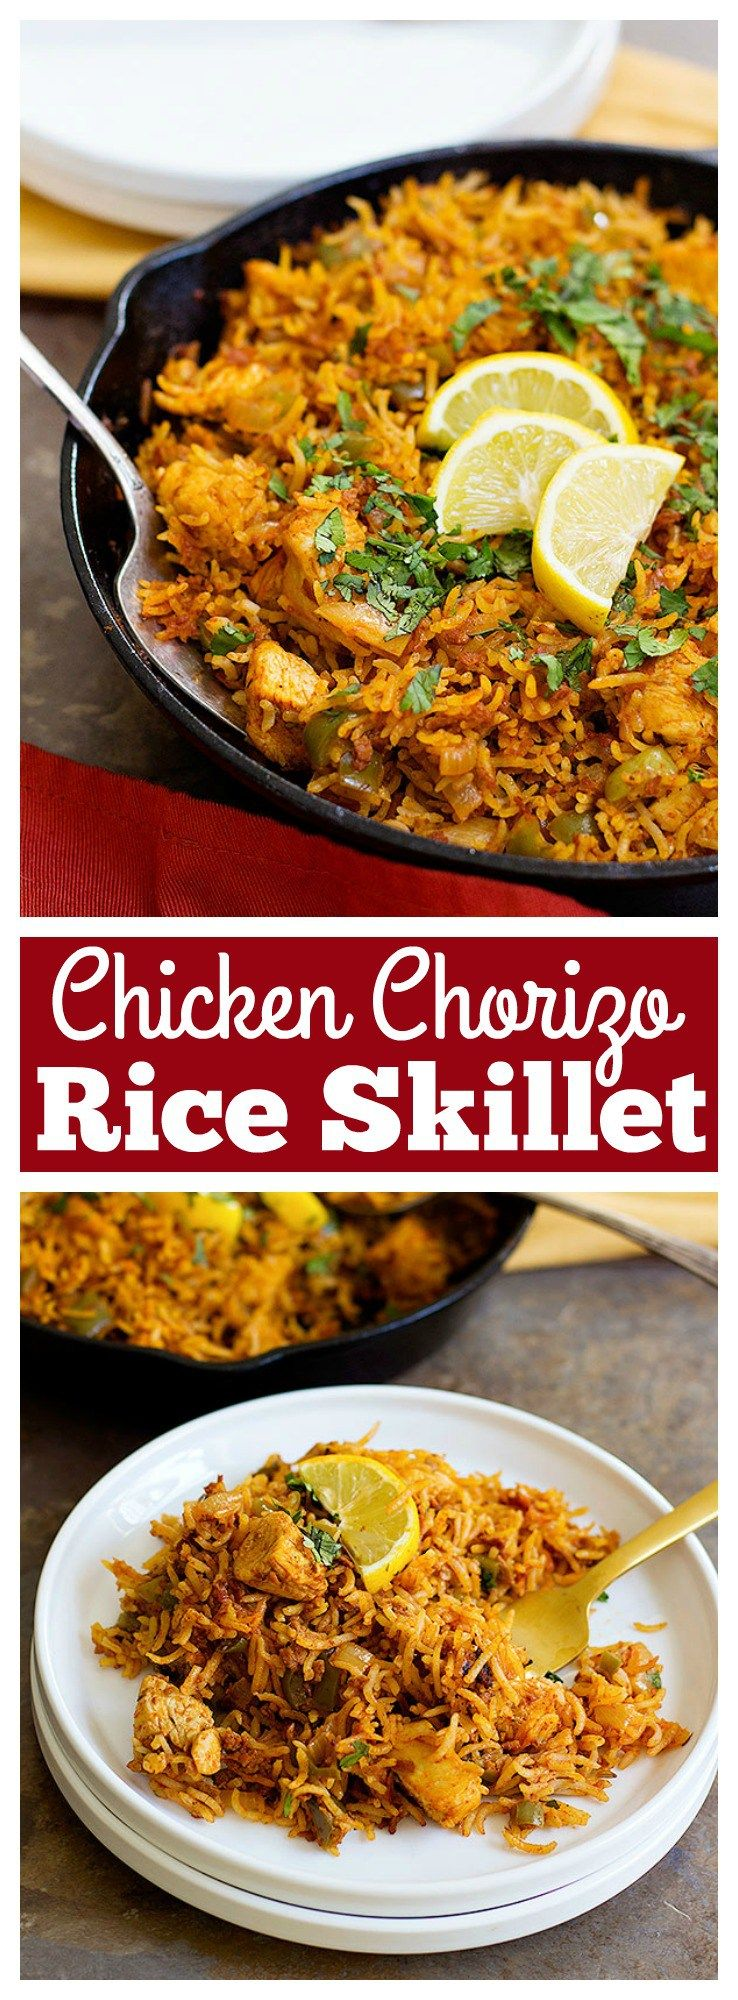 Chicken Chorizo Rice Skillet Is An Easy One Pan Dish That Uses A Few Ingredients With Maximum Flavor It S Perfect For Weeknight Dinners Or A Yummy Poulet